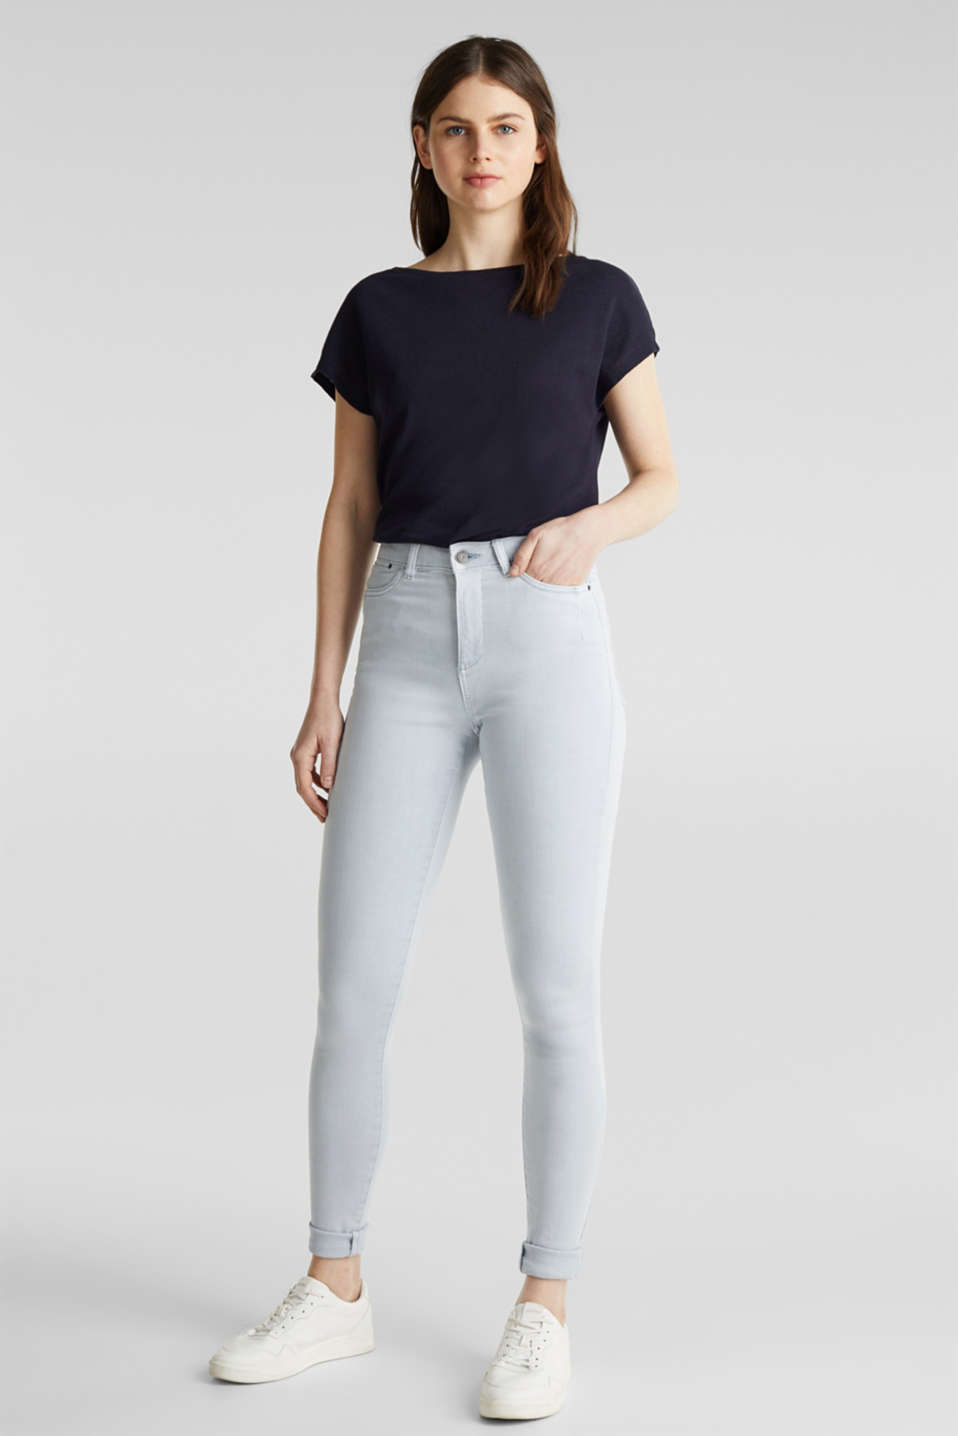 Esprit - Jeans with a figure-contouring effect